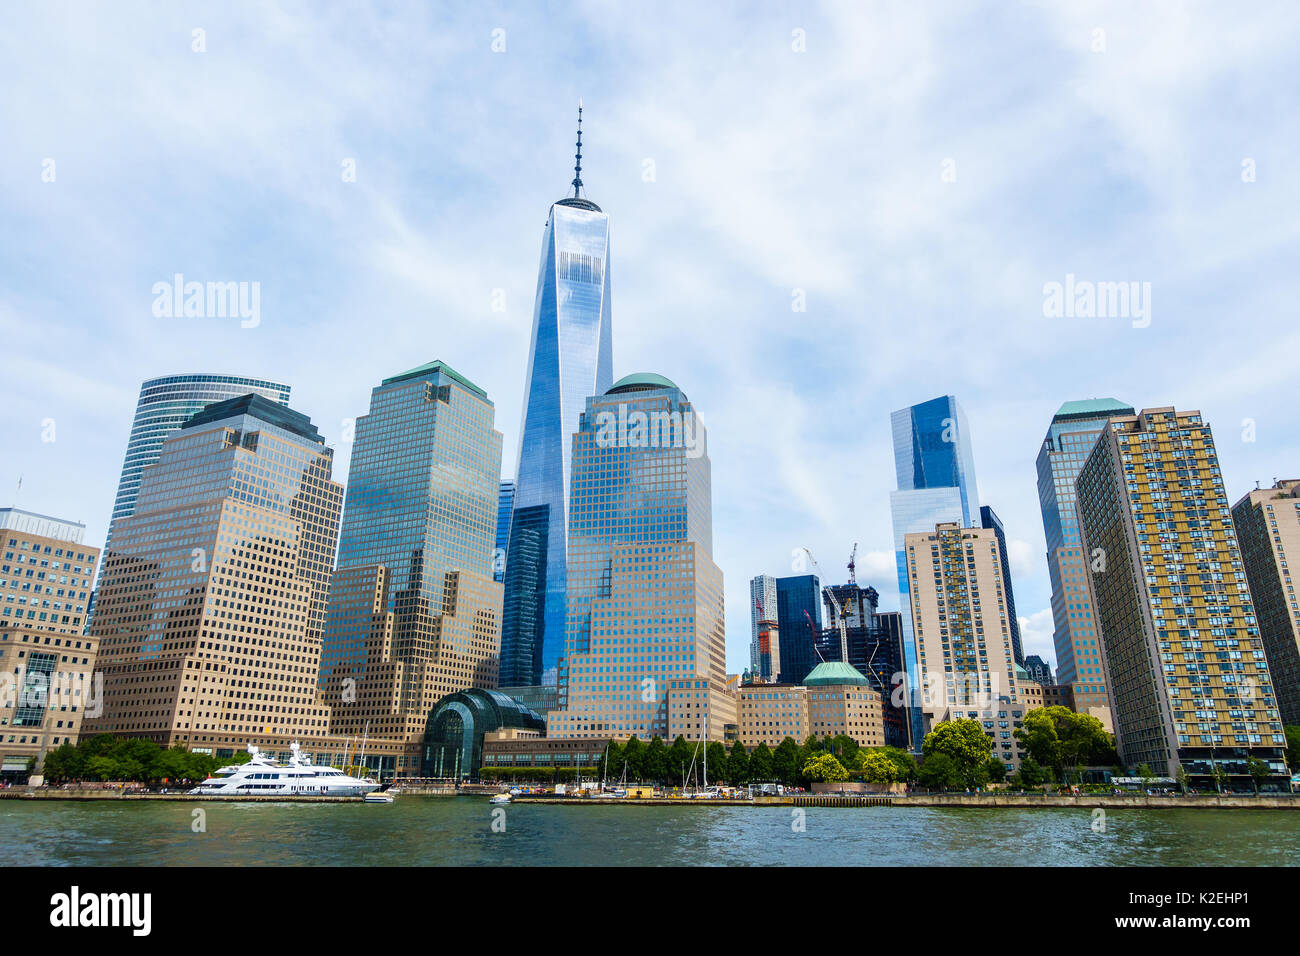 One World Trade Center in Lower Manhattan as seen from the Hudson river, New York City, USA Stock Photo